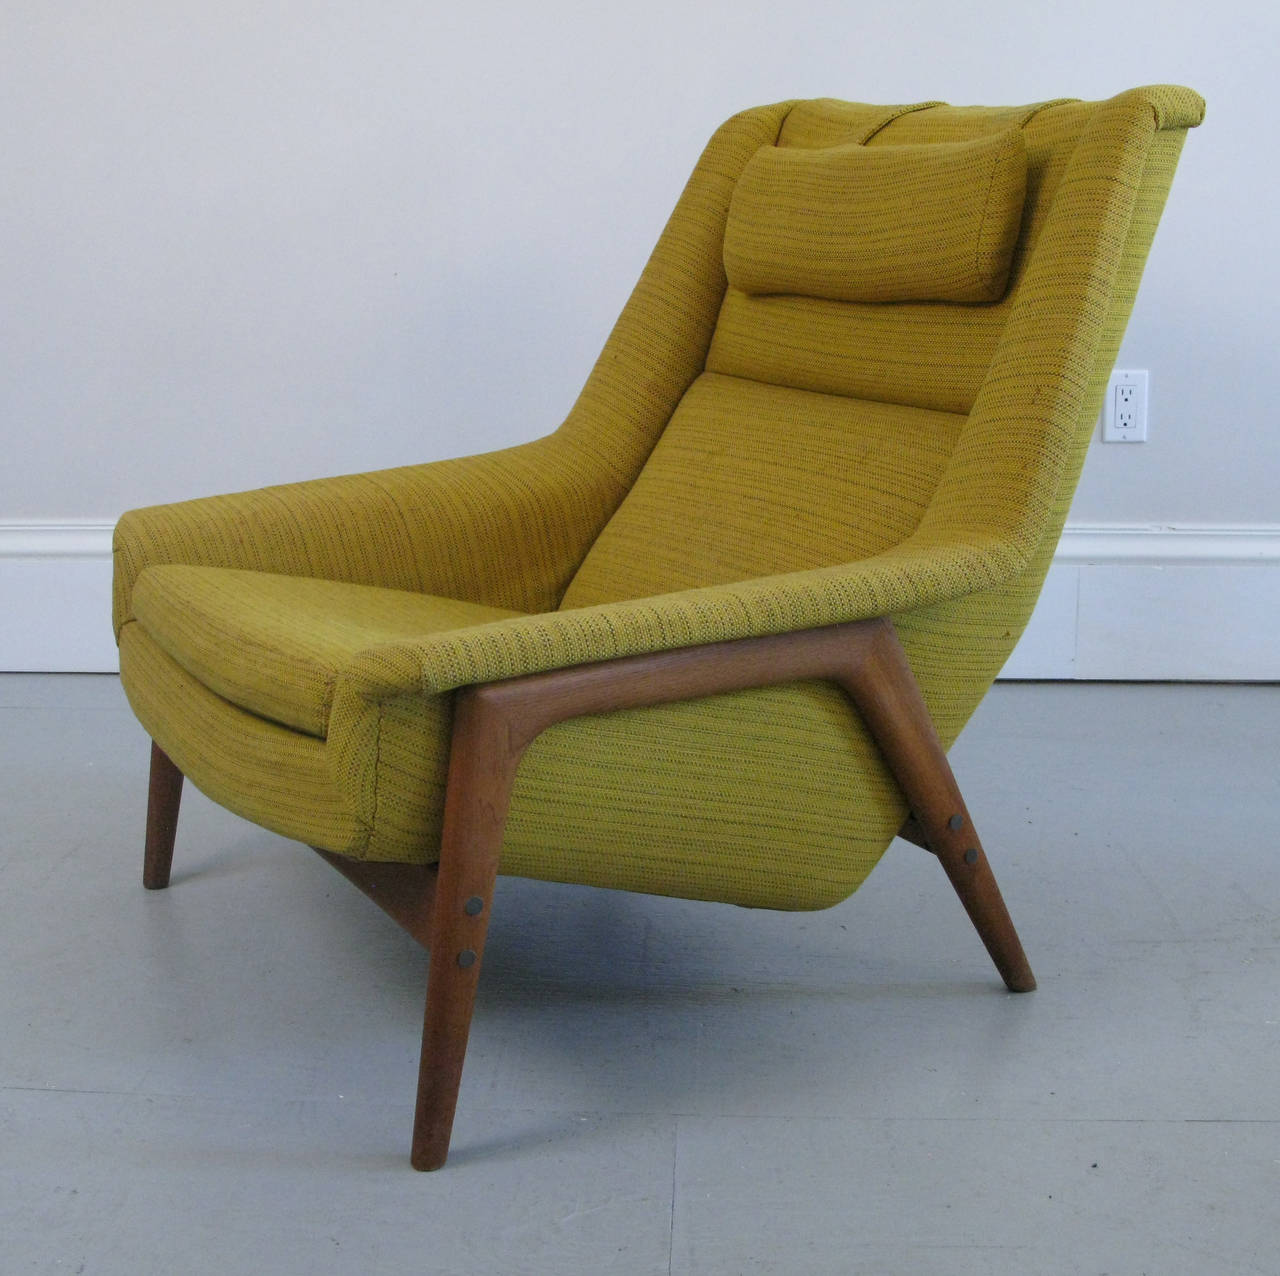 Image of: Photosm of Mid Century Lounge Chair